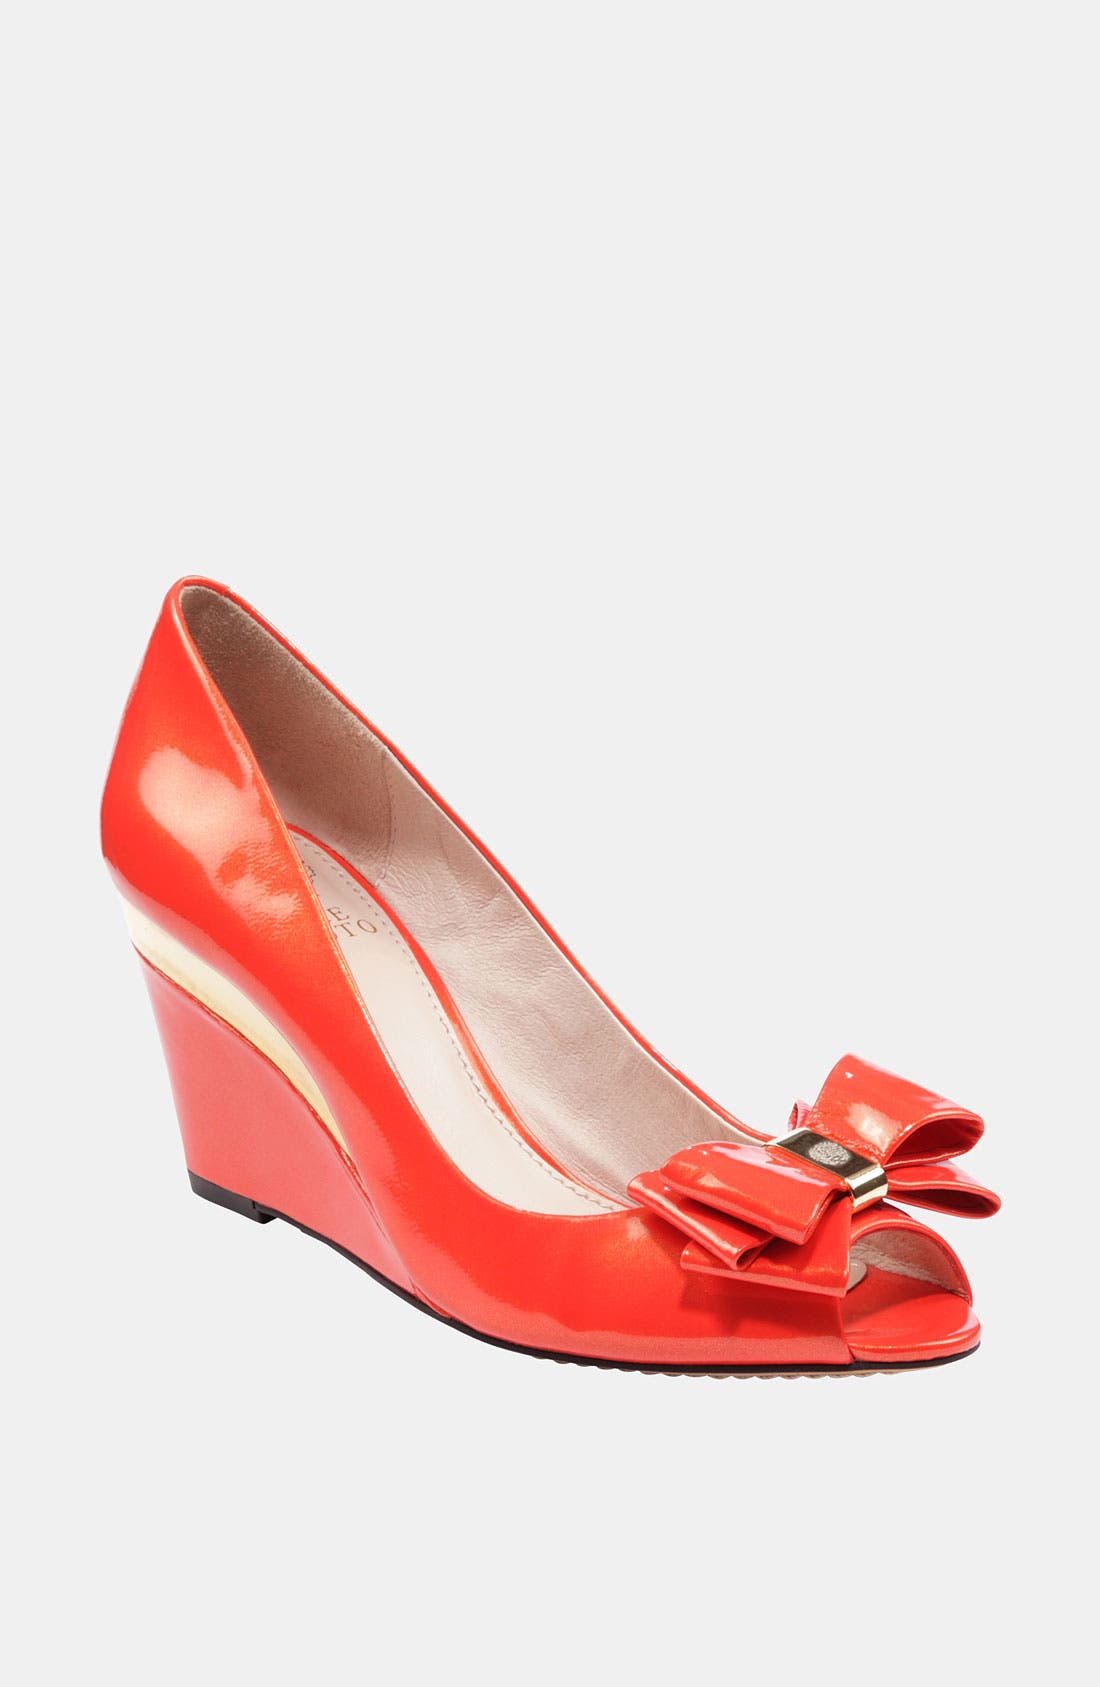 Alternate Image 1 Selected - Vince Camuto 'Varro' Wedge Pump (Online Only)